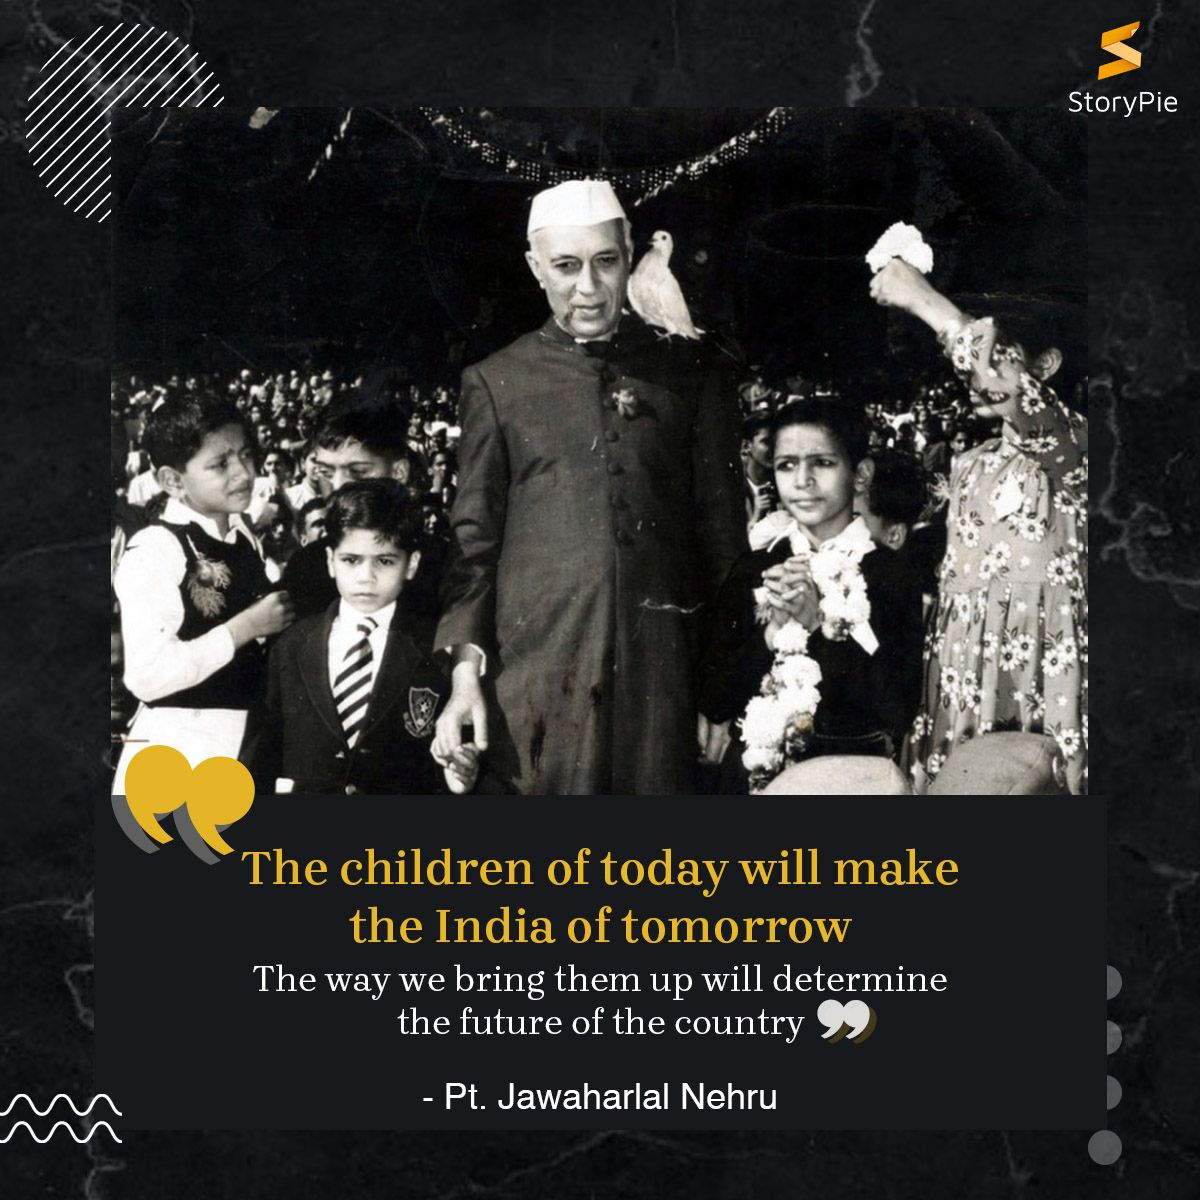 On ChildrensDay2019 Remembering the first Prime Minister